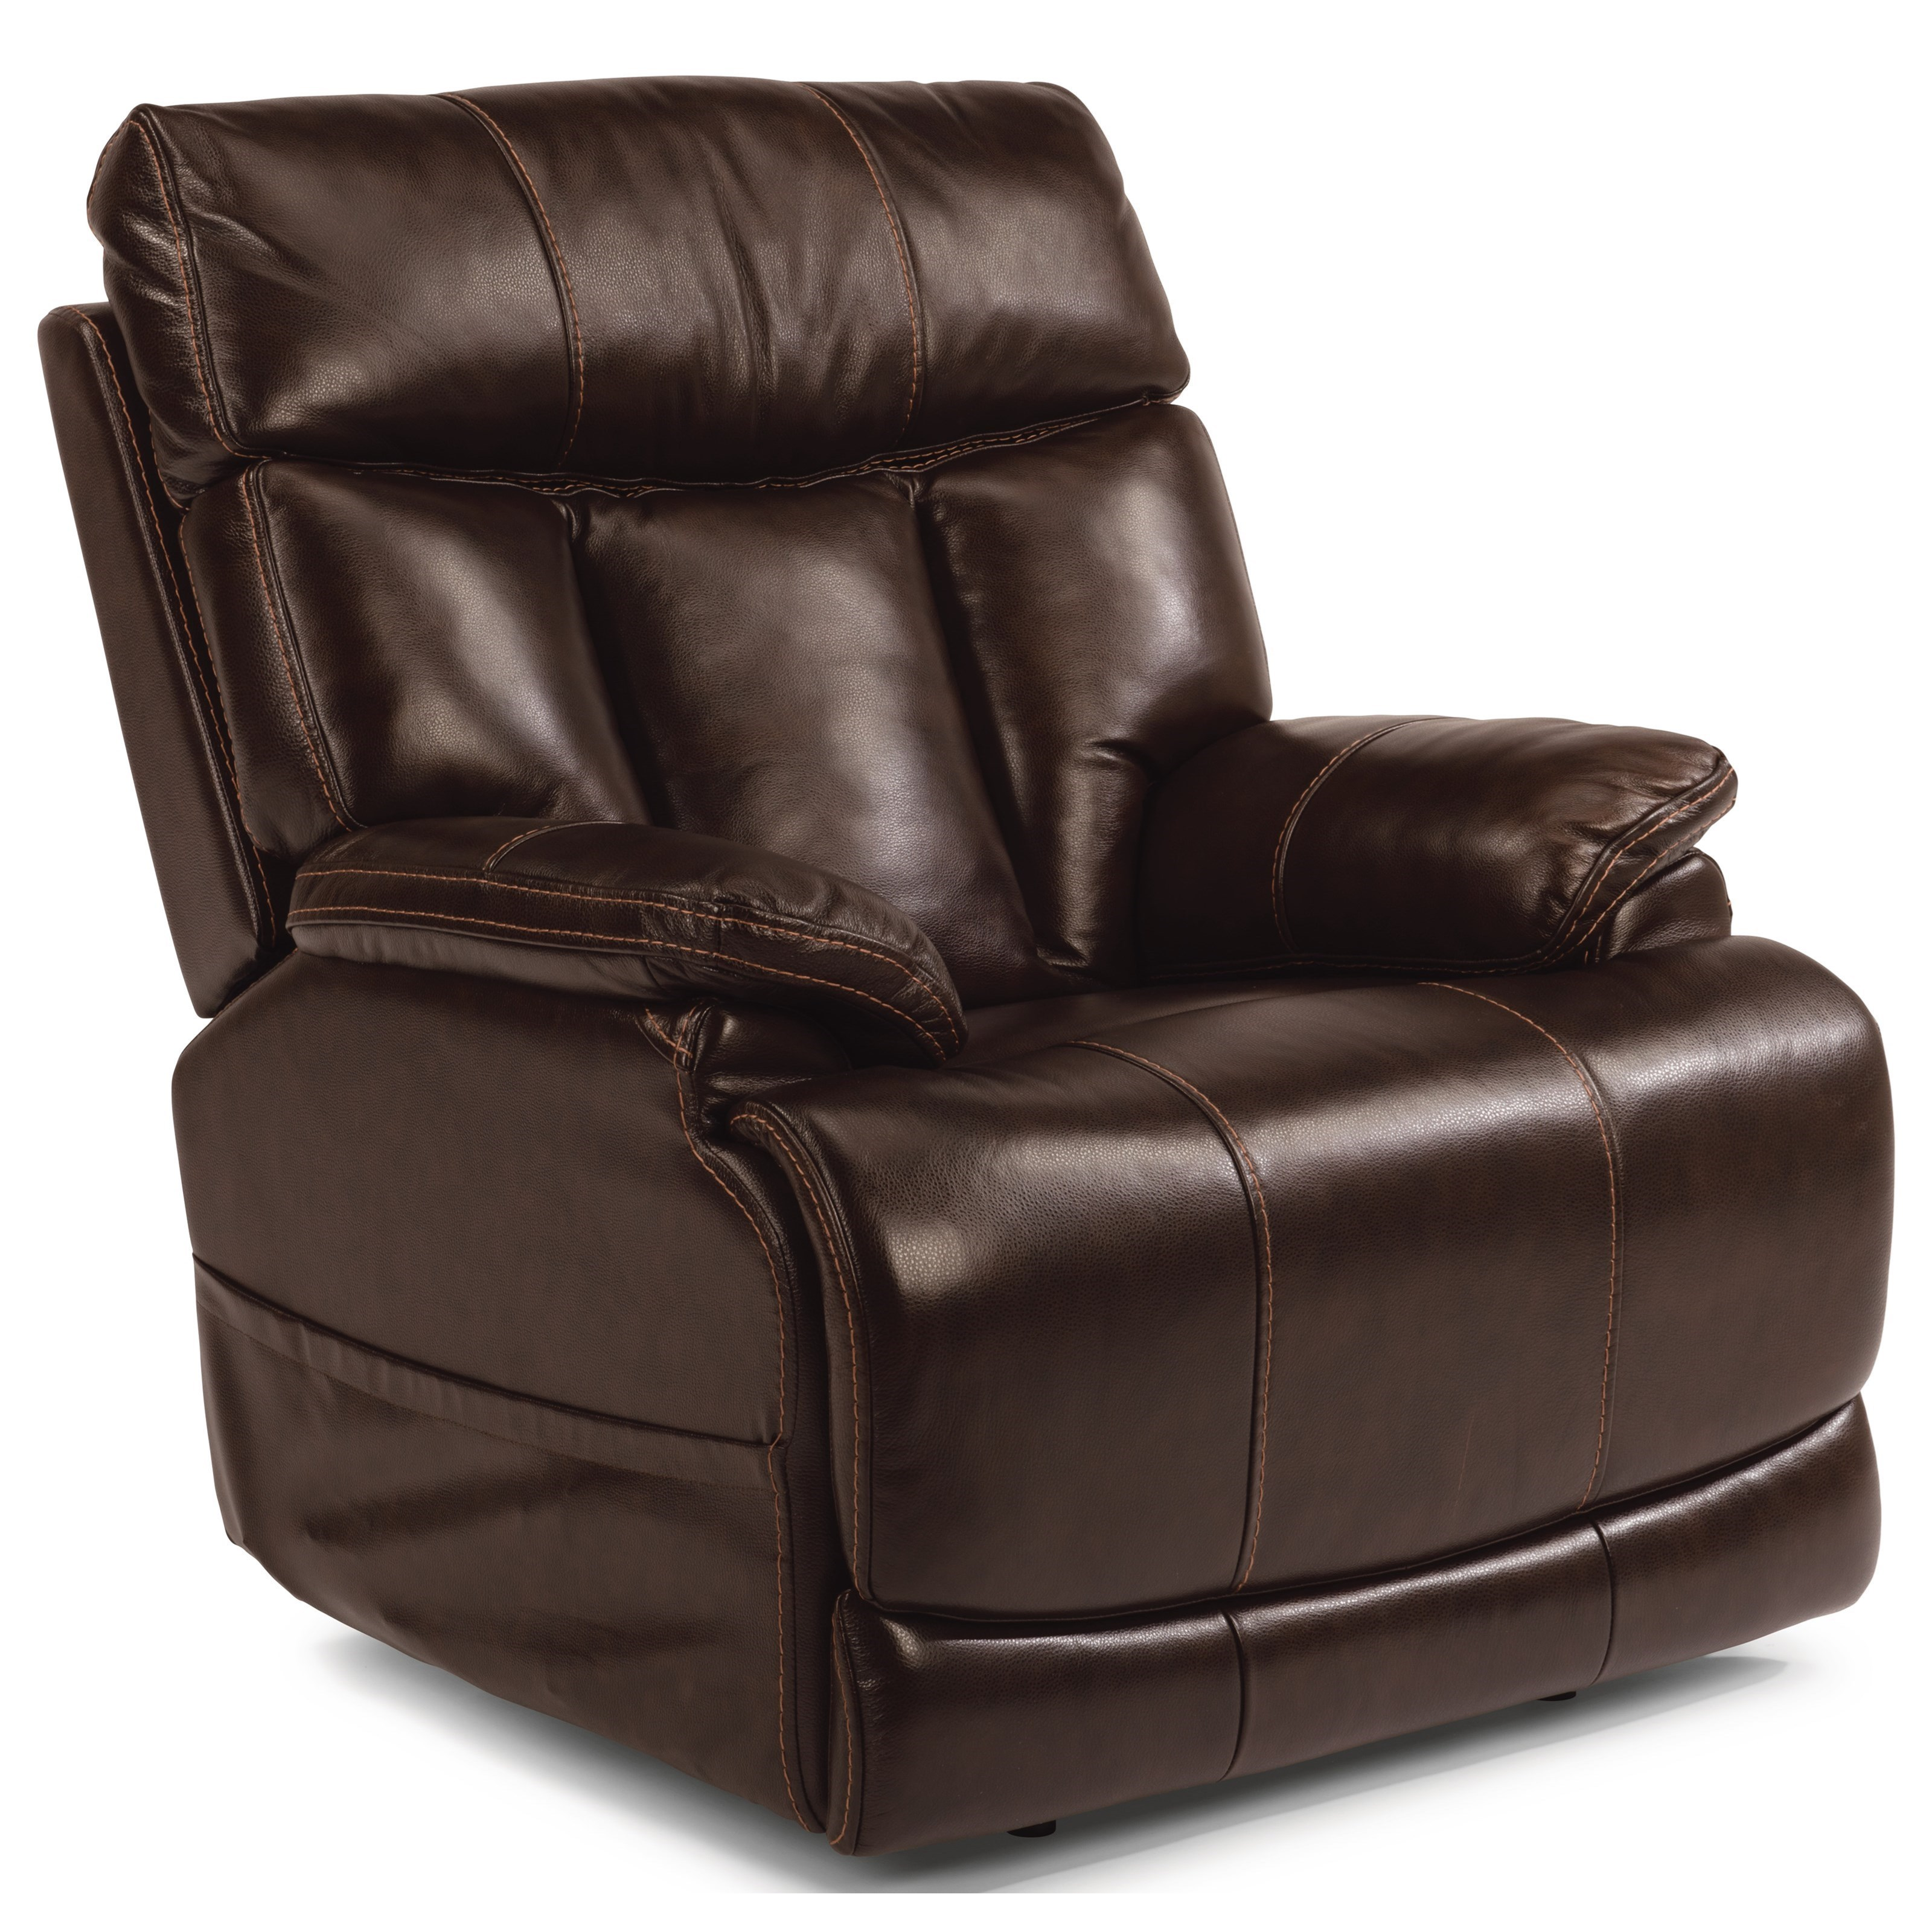 Latitudes-Clive Power Recliner with Power Headrest by Flexsteel at Walker's Furniture